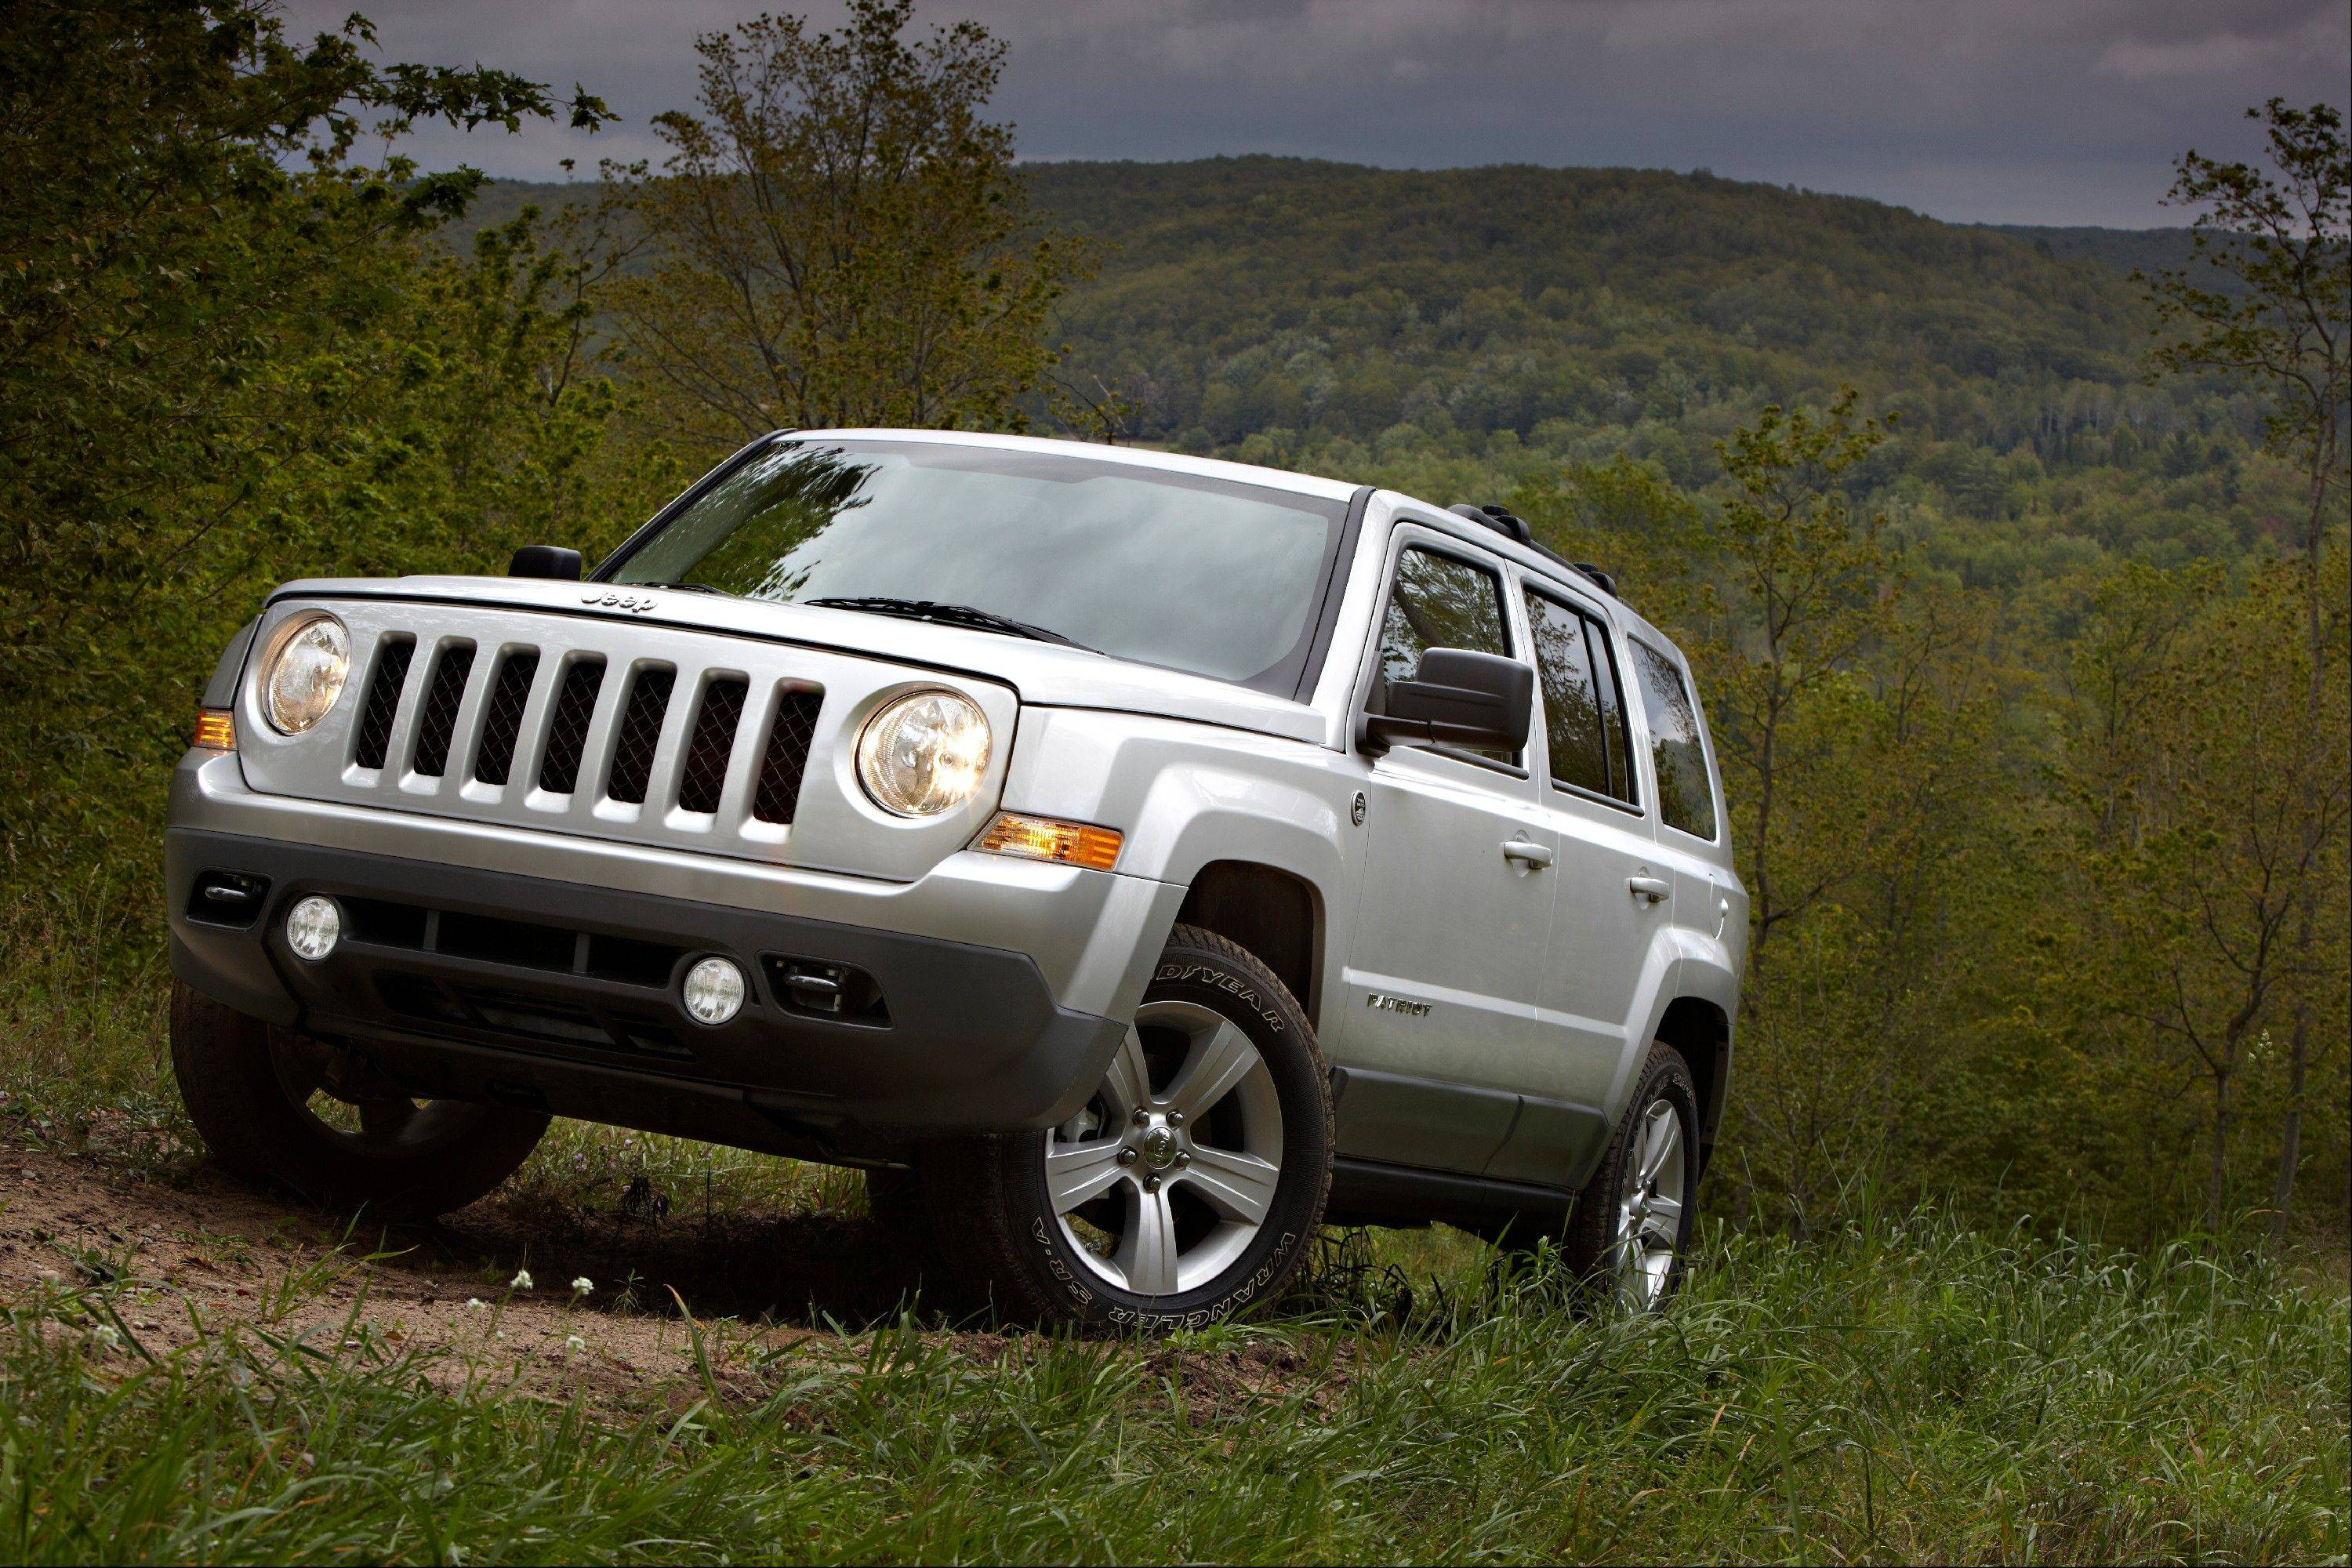 U.S. government safety regulators are investigating complaints that engines on Jeep Patriot SUVs can stall without warning at highway speeds.